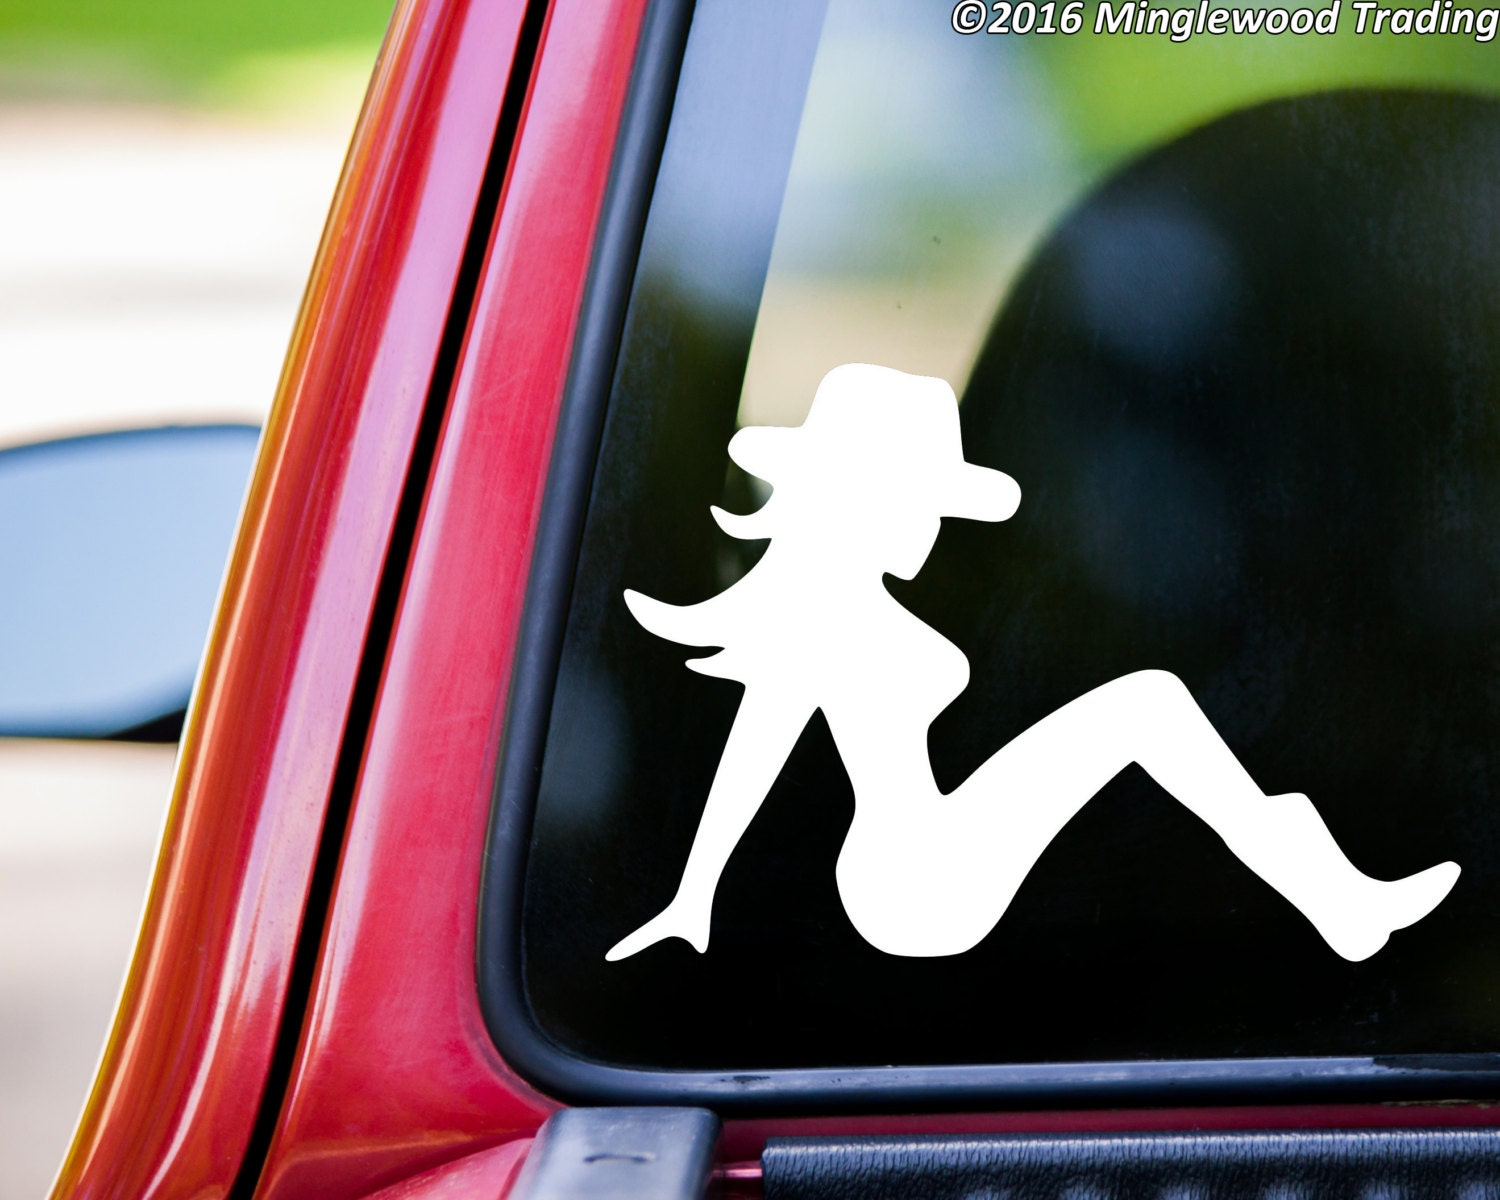 Mudflap Cowgirl Trucker Girl Lady Country Truck Vinyl Decal